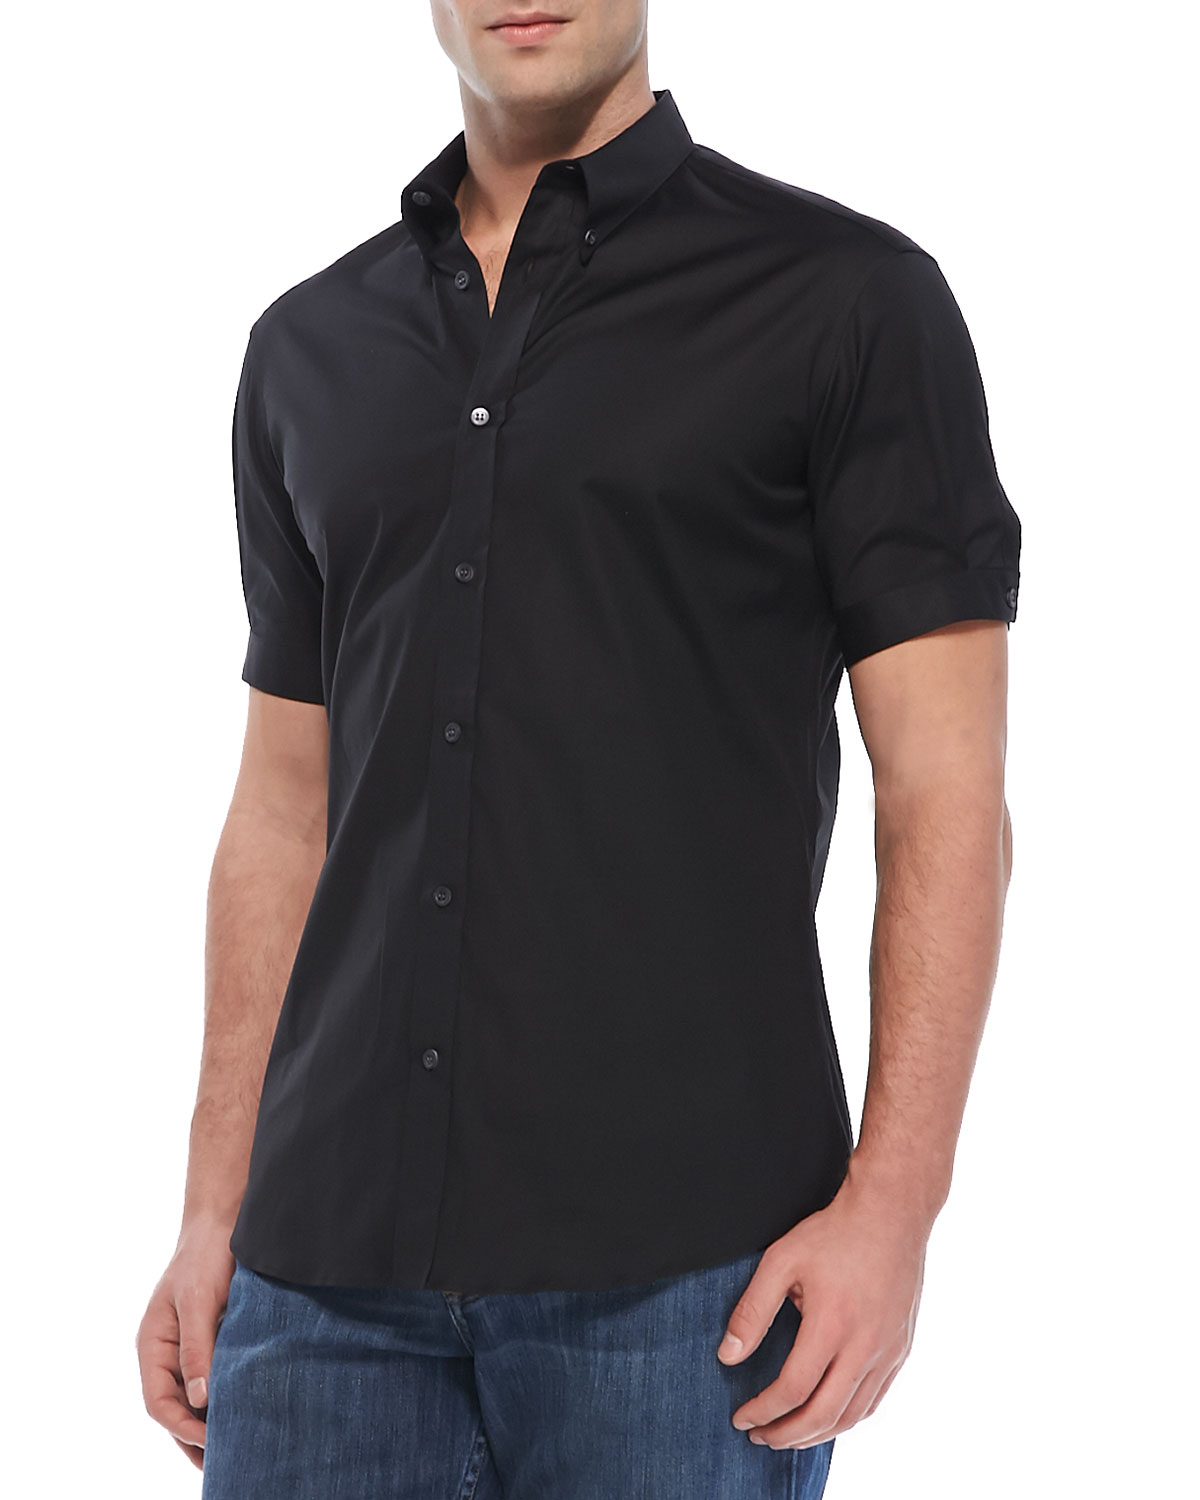 Free shipping and returns on Men's Black Shirts at goodforexbinar.cf Skip navigation. Nordstrom Men's Shop Traditional Fit Non-Iron Gingham Dress Shirt. $ () BLACK ROCK; RVCA Benji Short Sleeve Woven Shirt. $ ALLSAINTS Chokai Slim Fit Print Shirt Jacket.